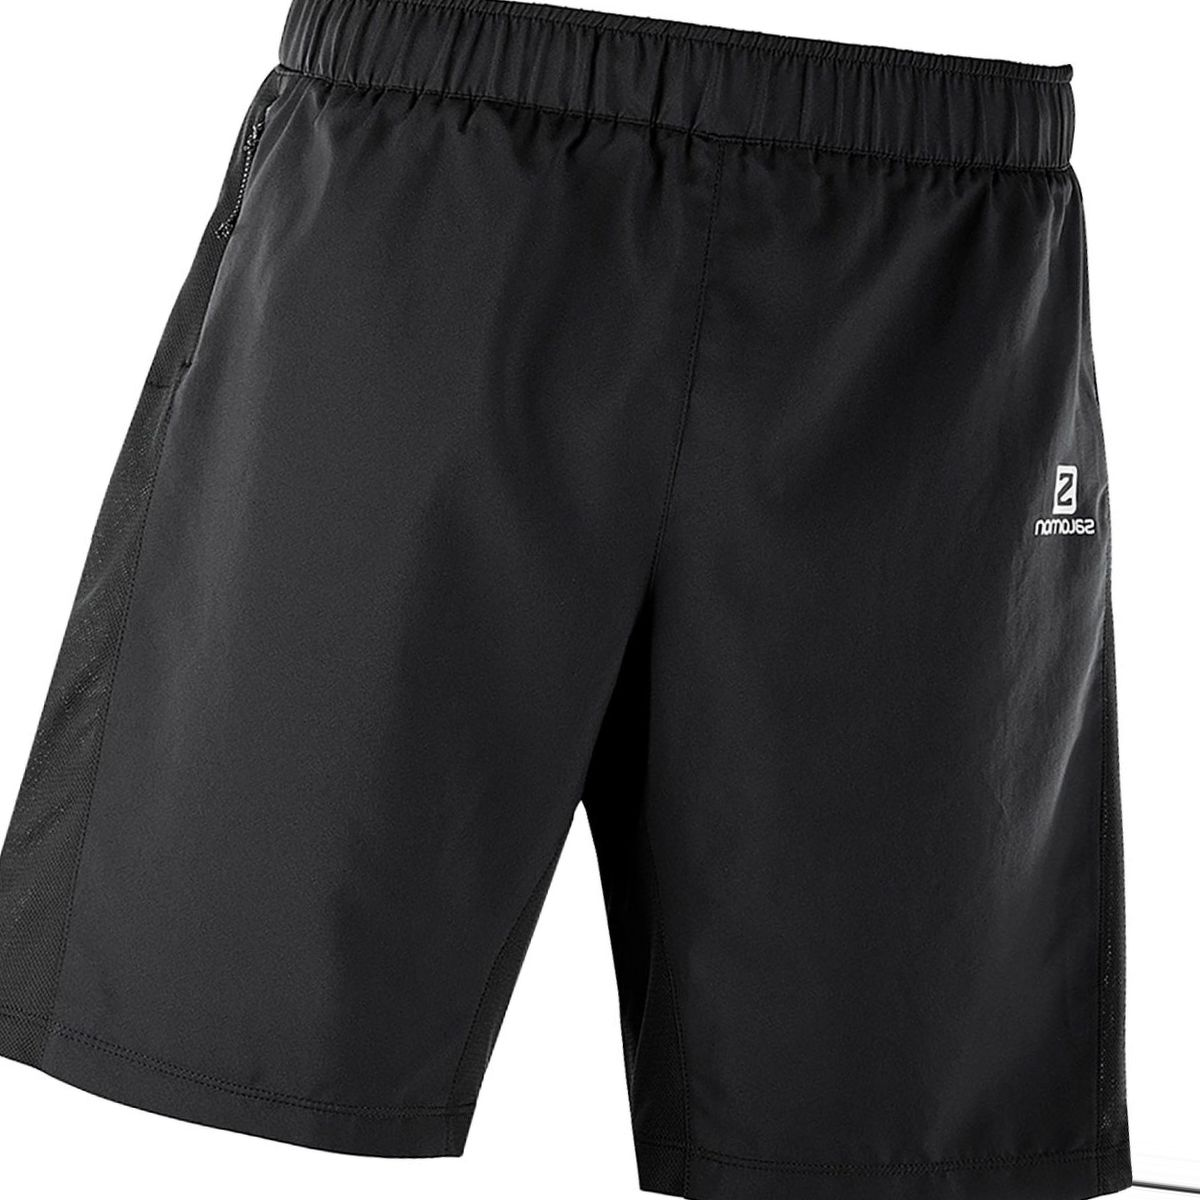 Salomon Agile 2in1 Short - Men's